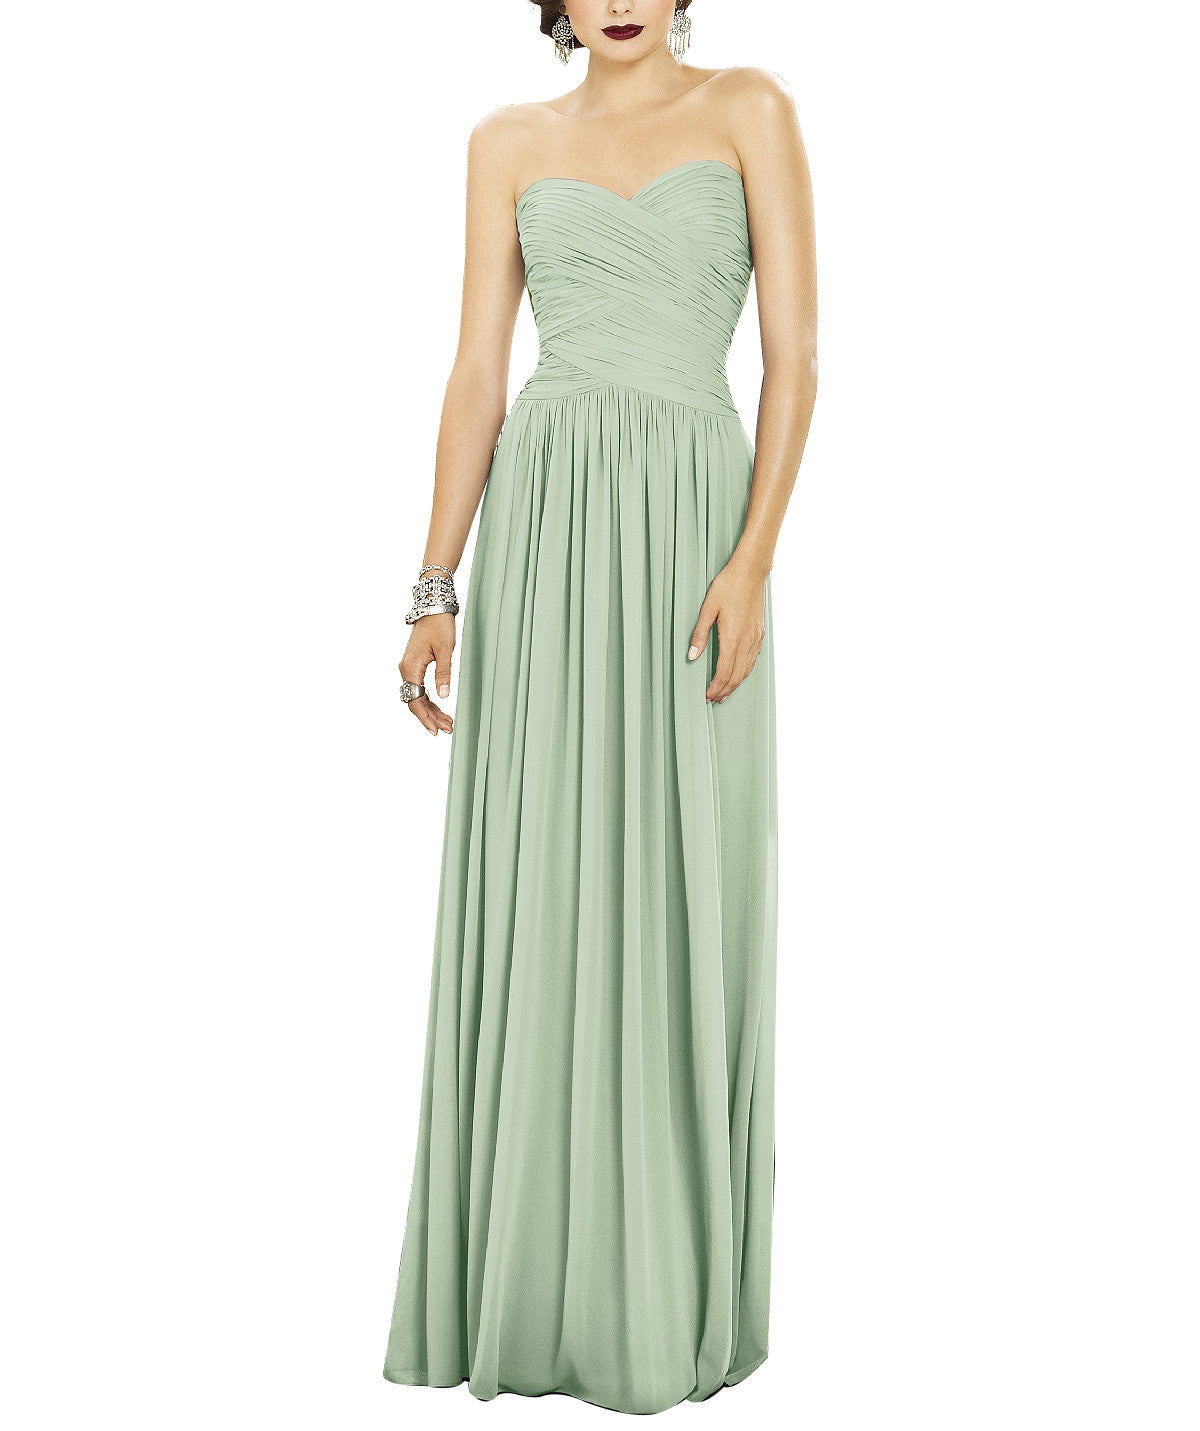 Dessy collection style 2880 bridesmaid dress brideside dessy collection style 2880 ombrellifo Gallery